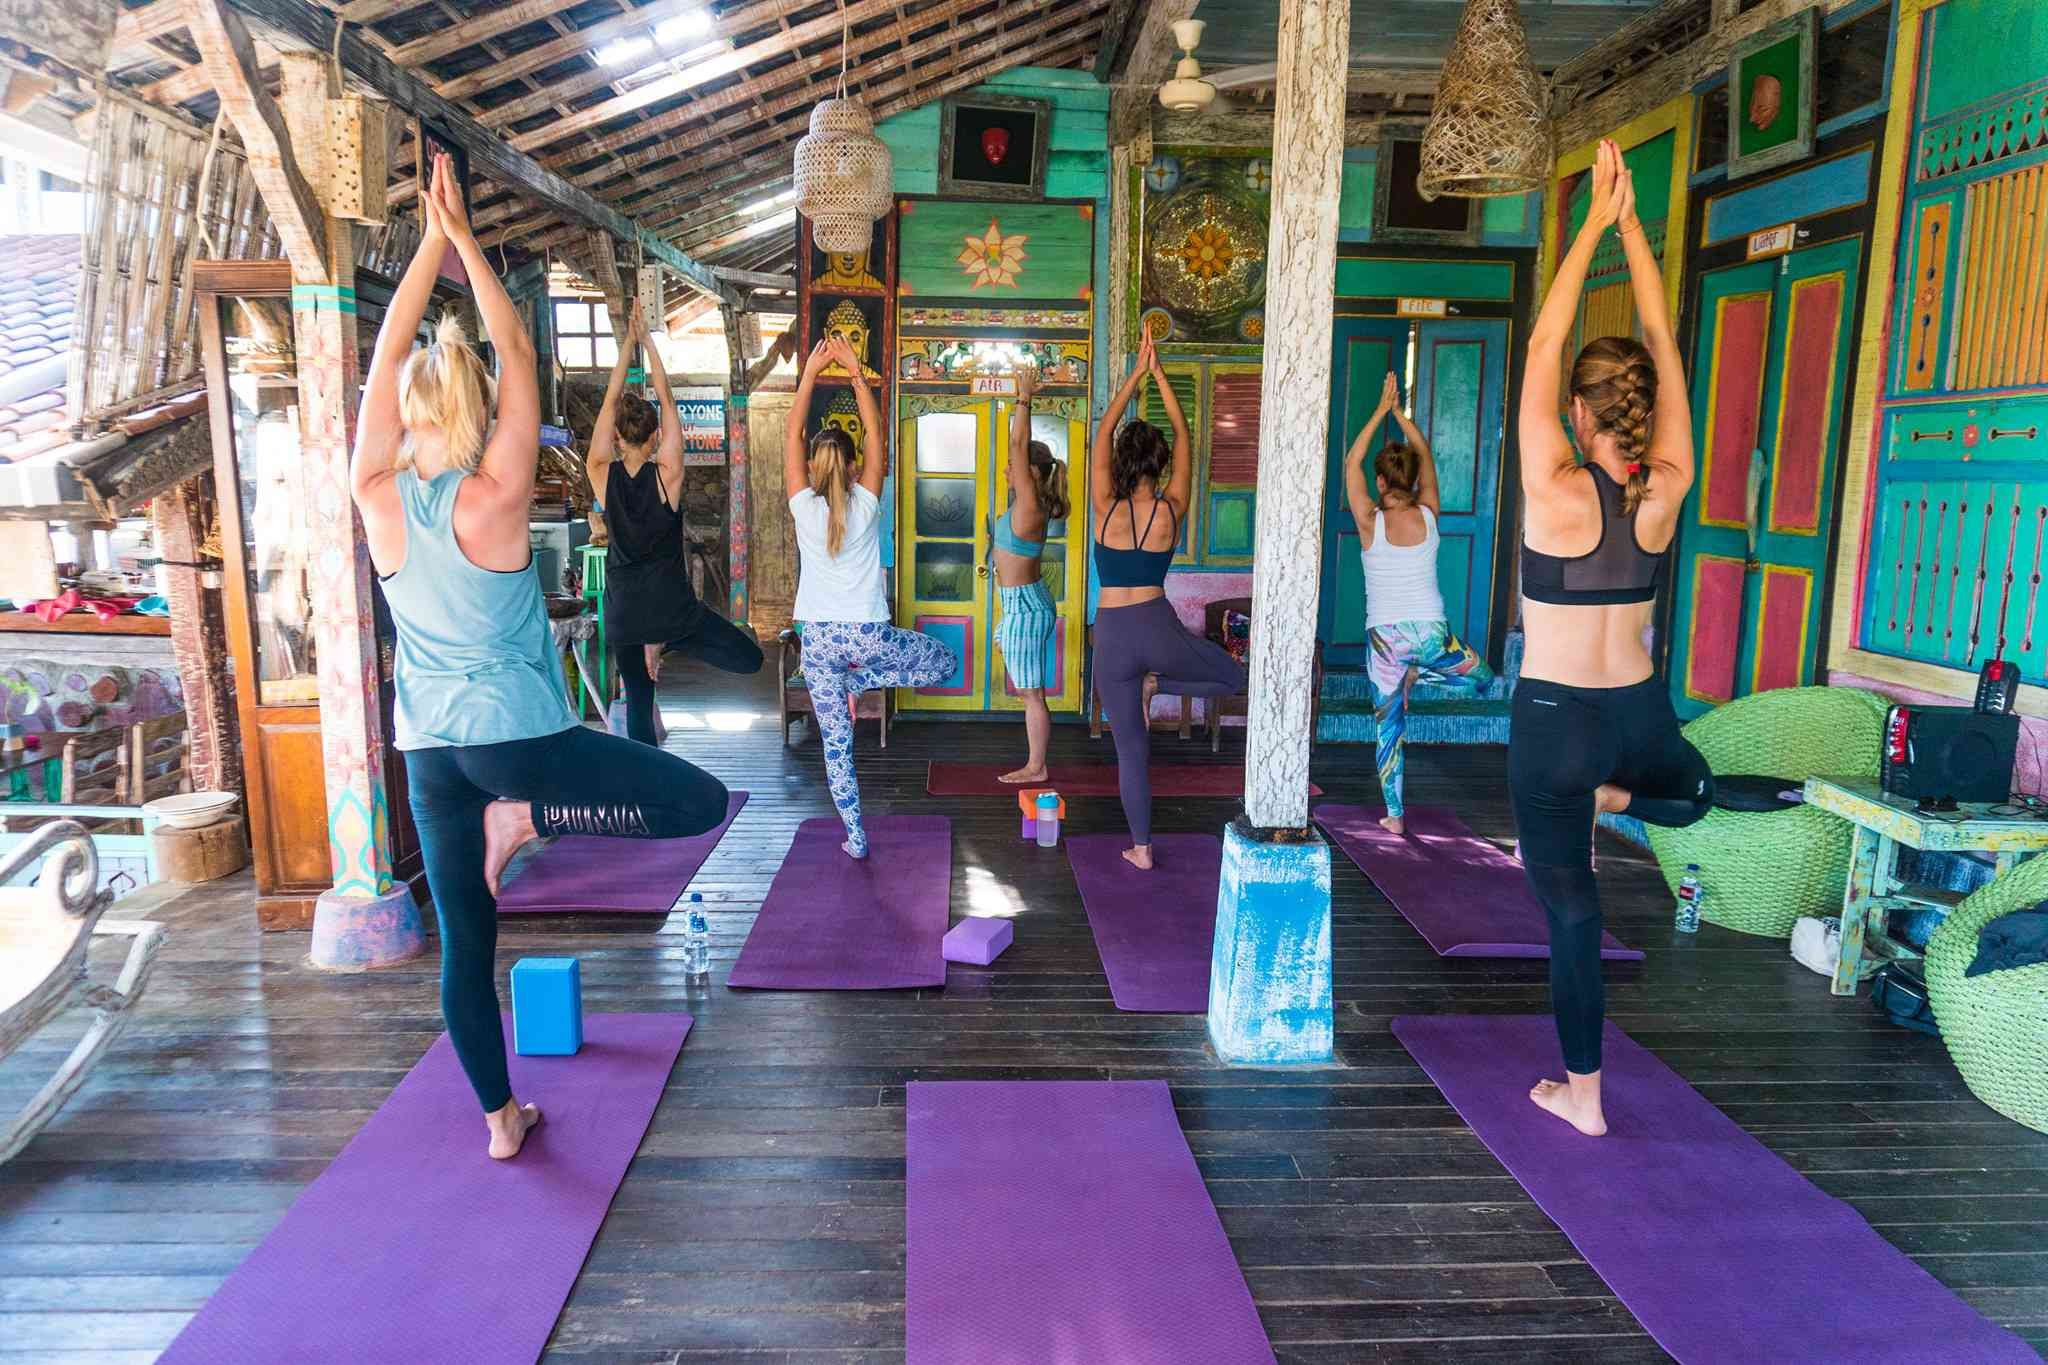 Small yoga class of six people doing tree pose in a colofully decorate room in Bali